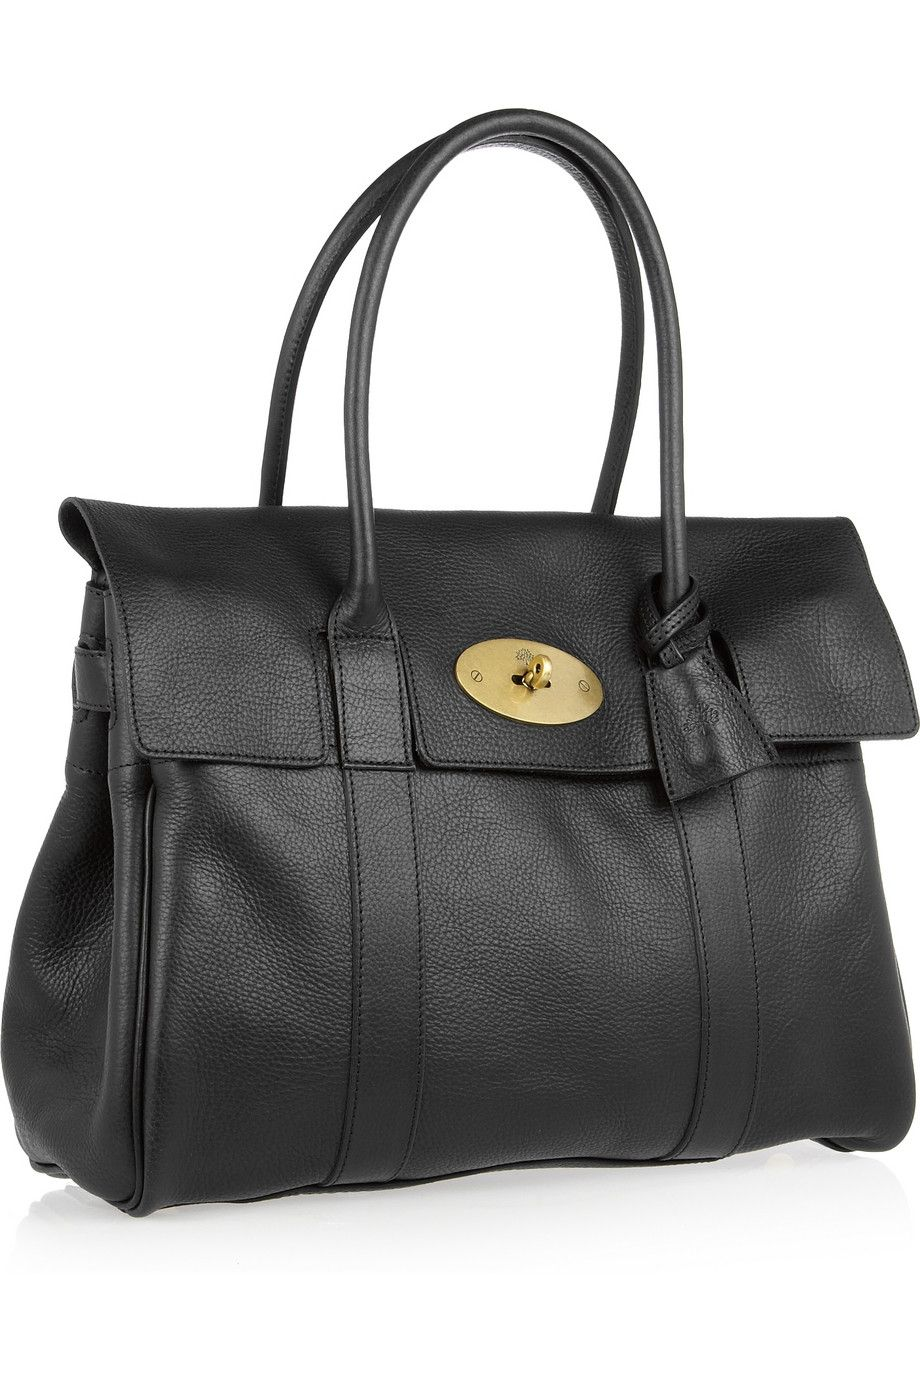 47fecad8954a Mulberry black bayswater - the love of my life!